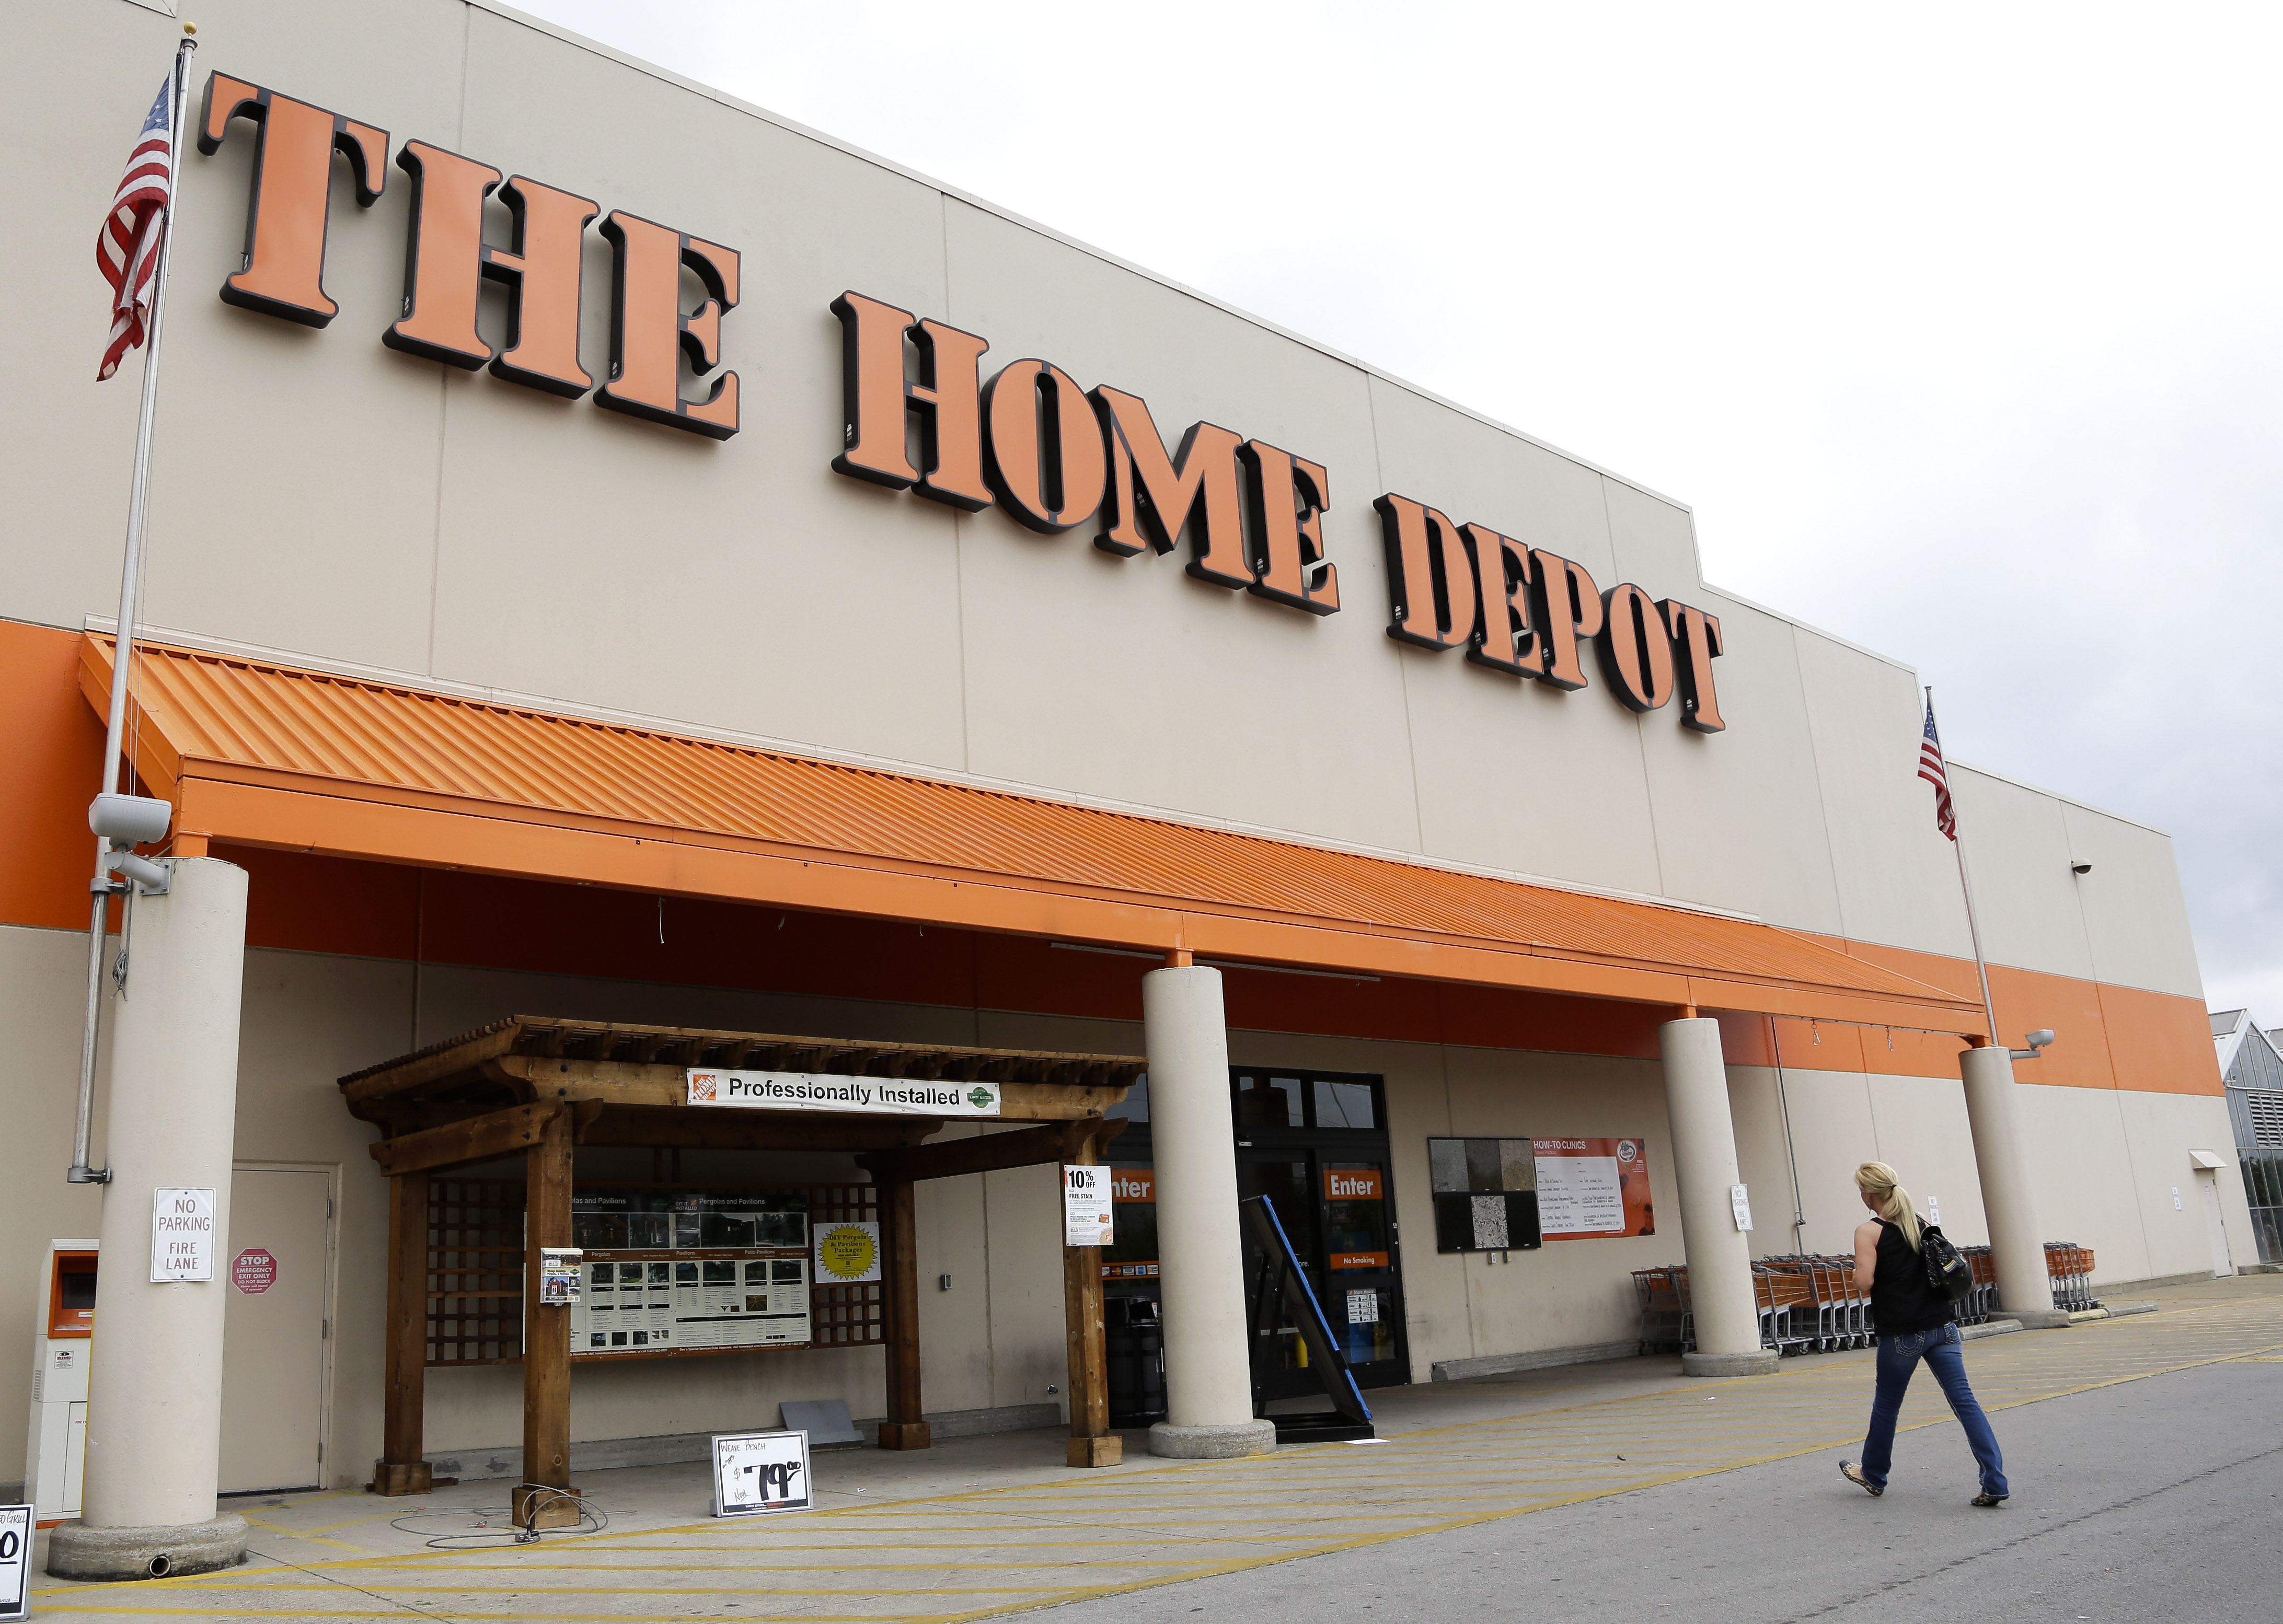 7 Popular Siding Materials To Consider: Home Depot Phasing Out Toxic Vinyl Flooring